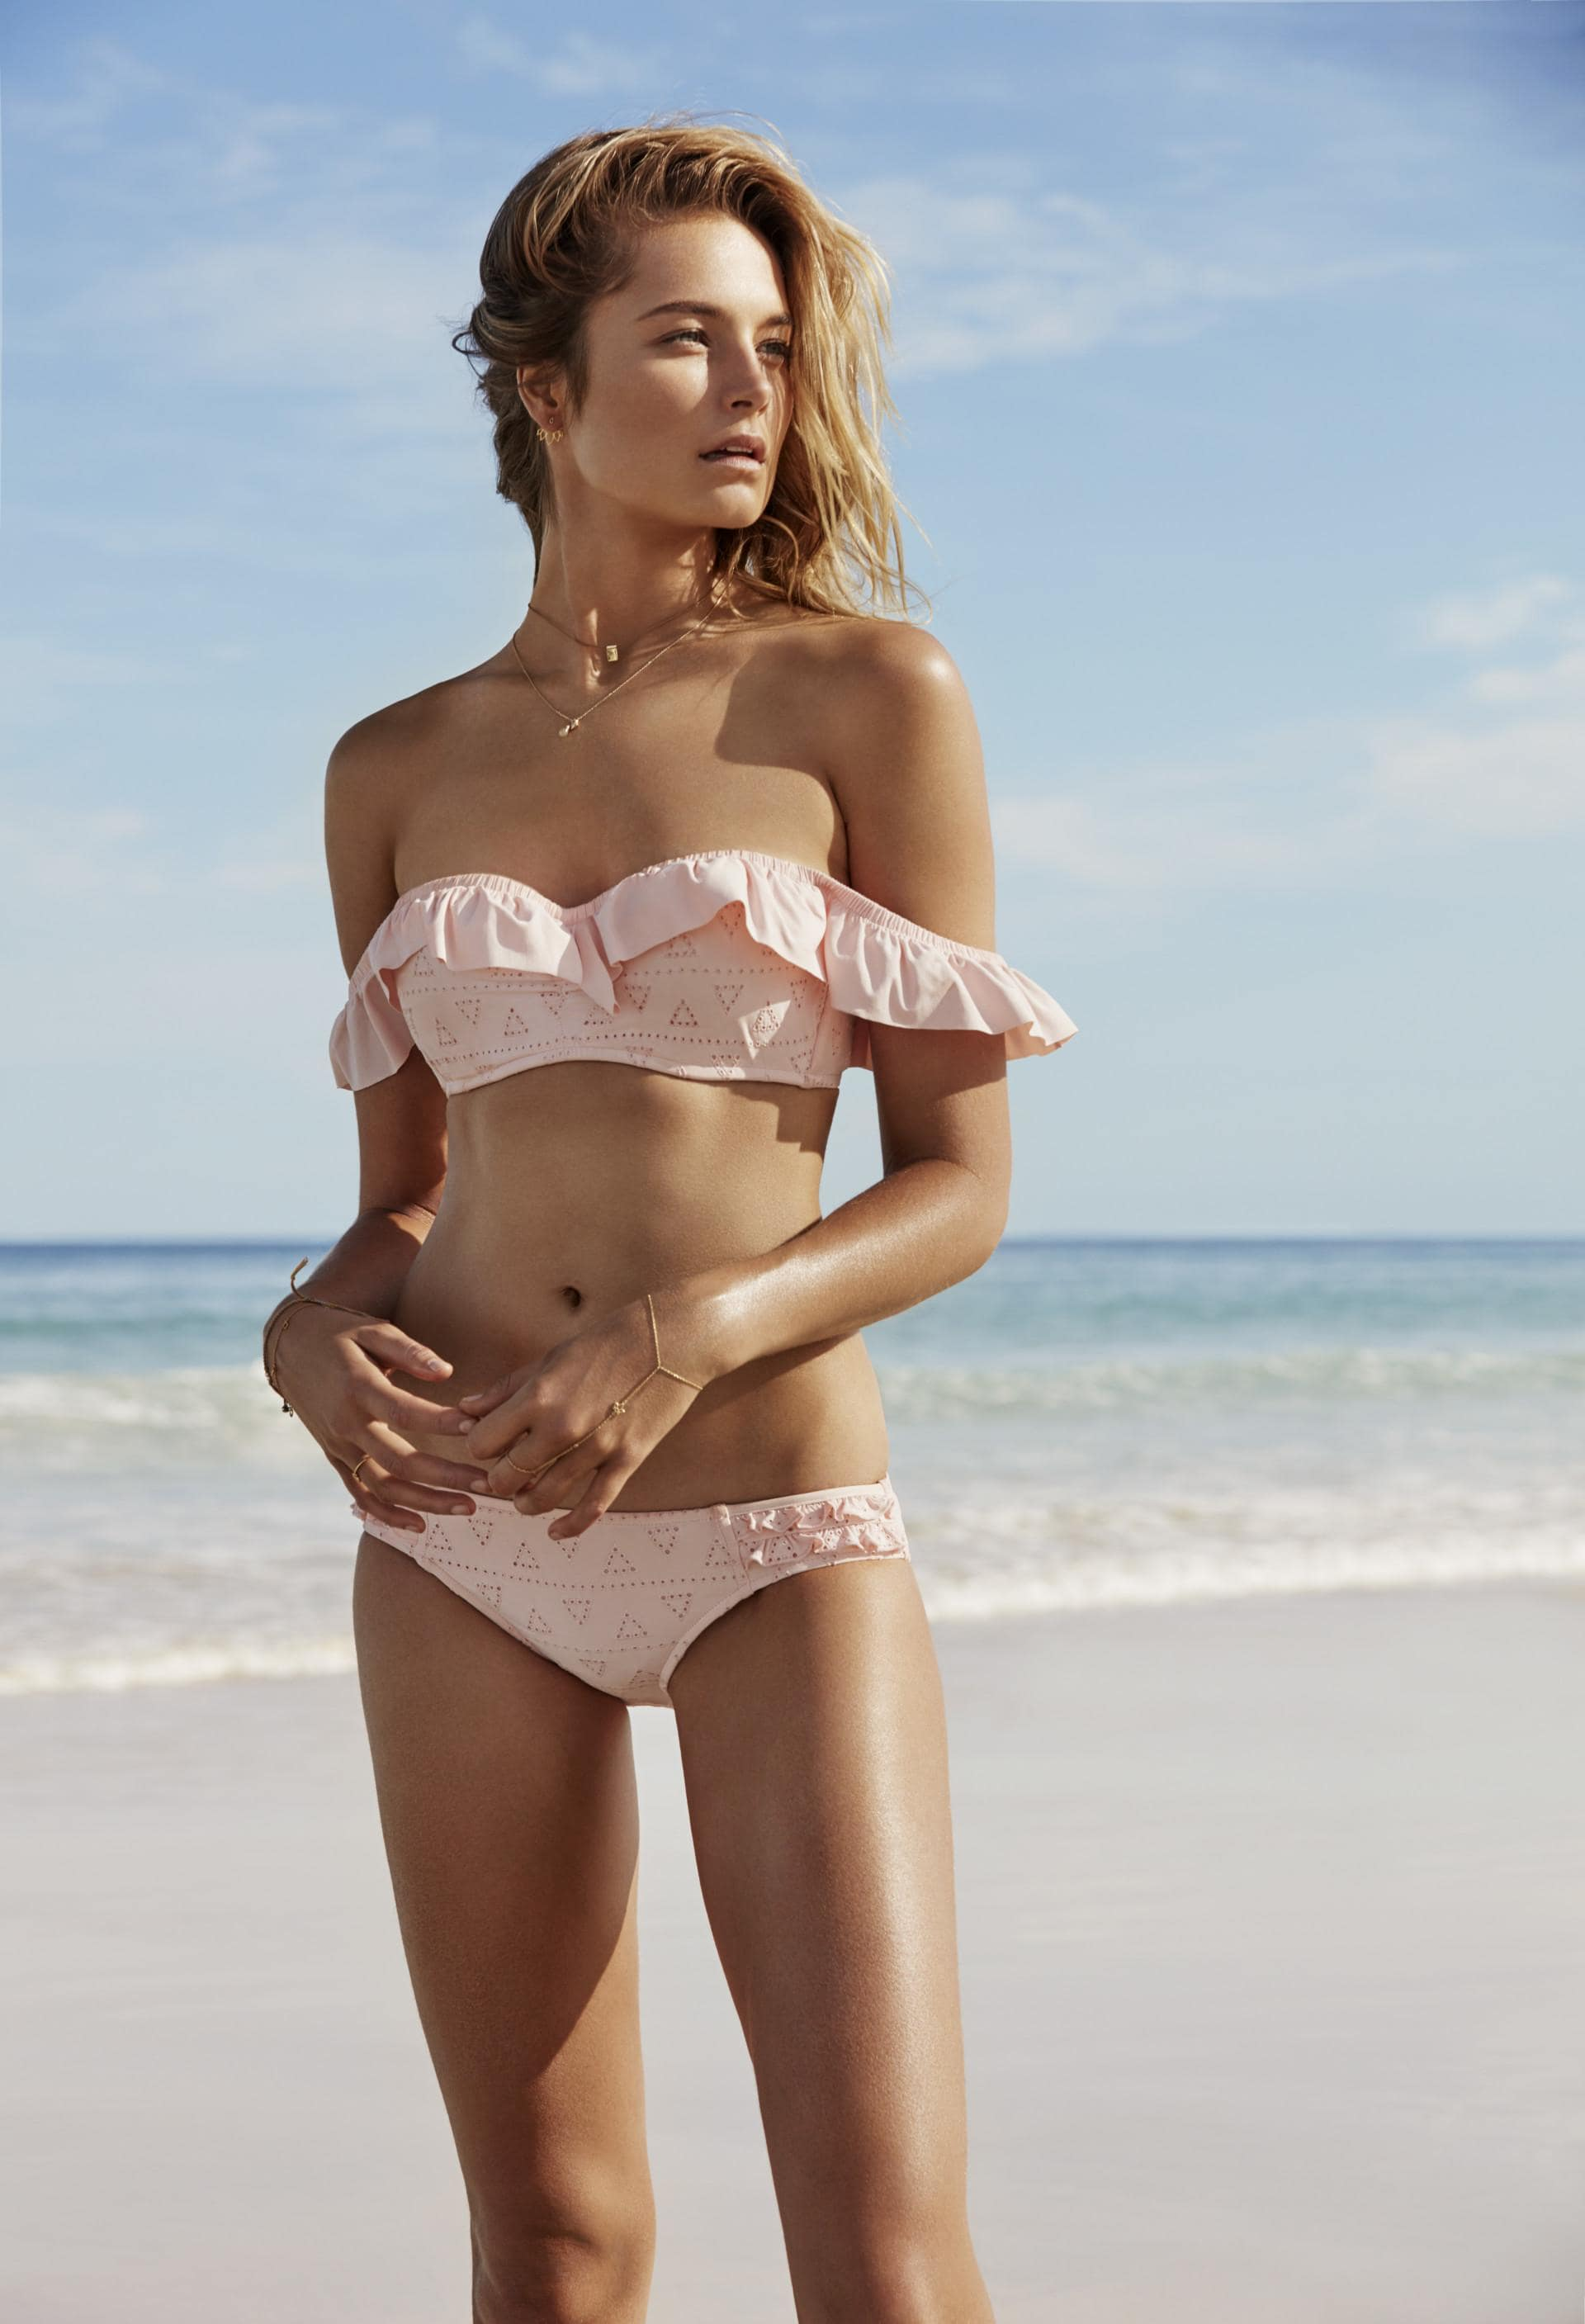 PINK is the destination for cute bras, panties, college apparel and more! Shop a wide selection of fun and flirty styles today.